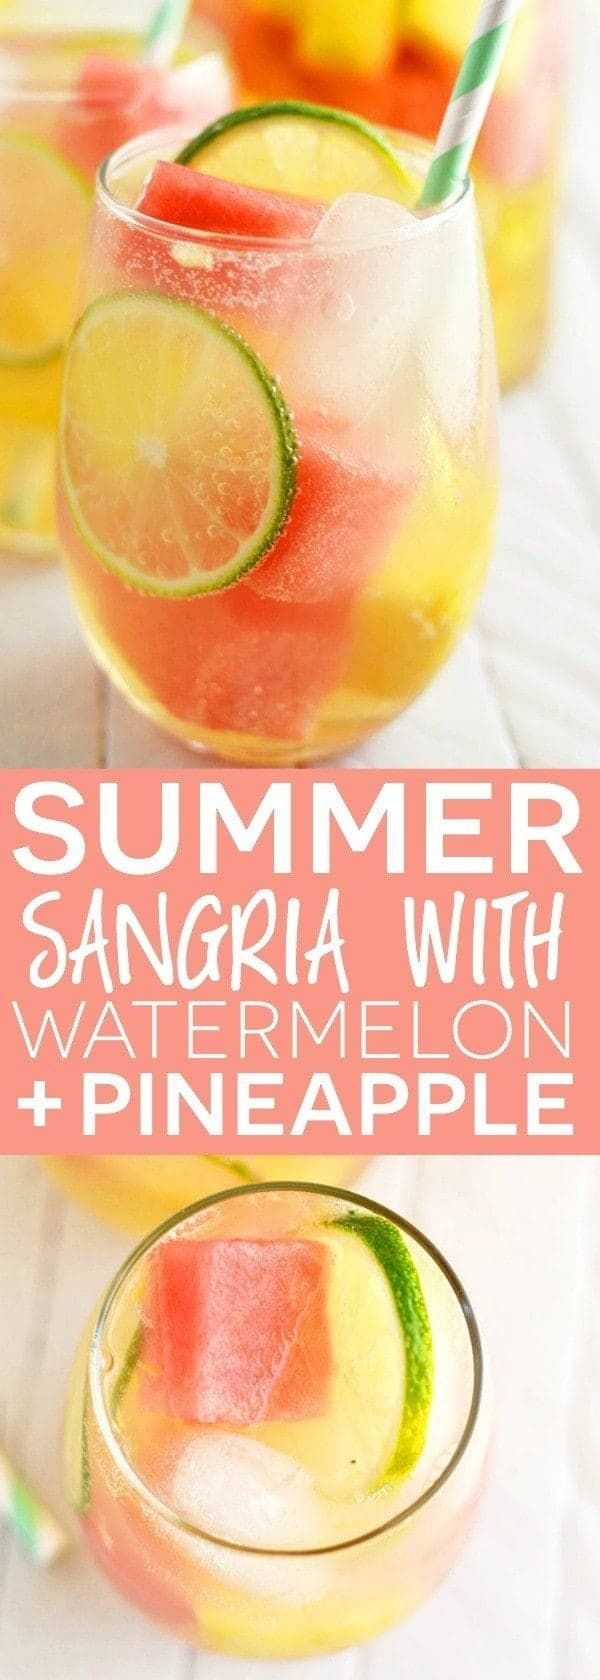 Summer Sangria with Watermelon and Pineapple – Nicole Lewis